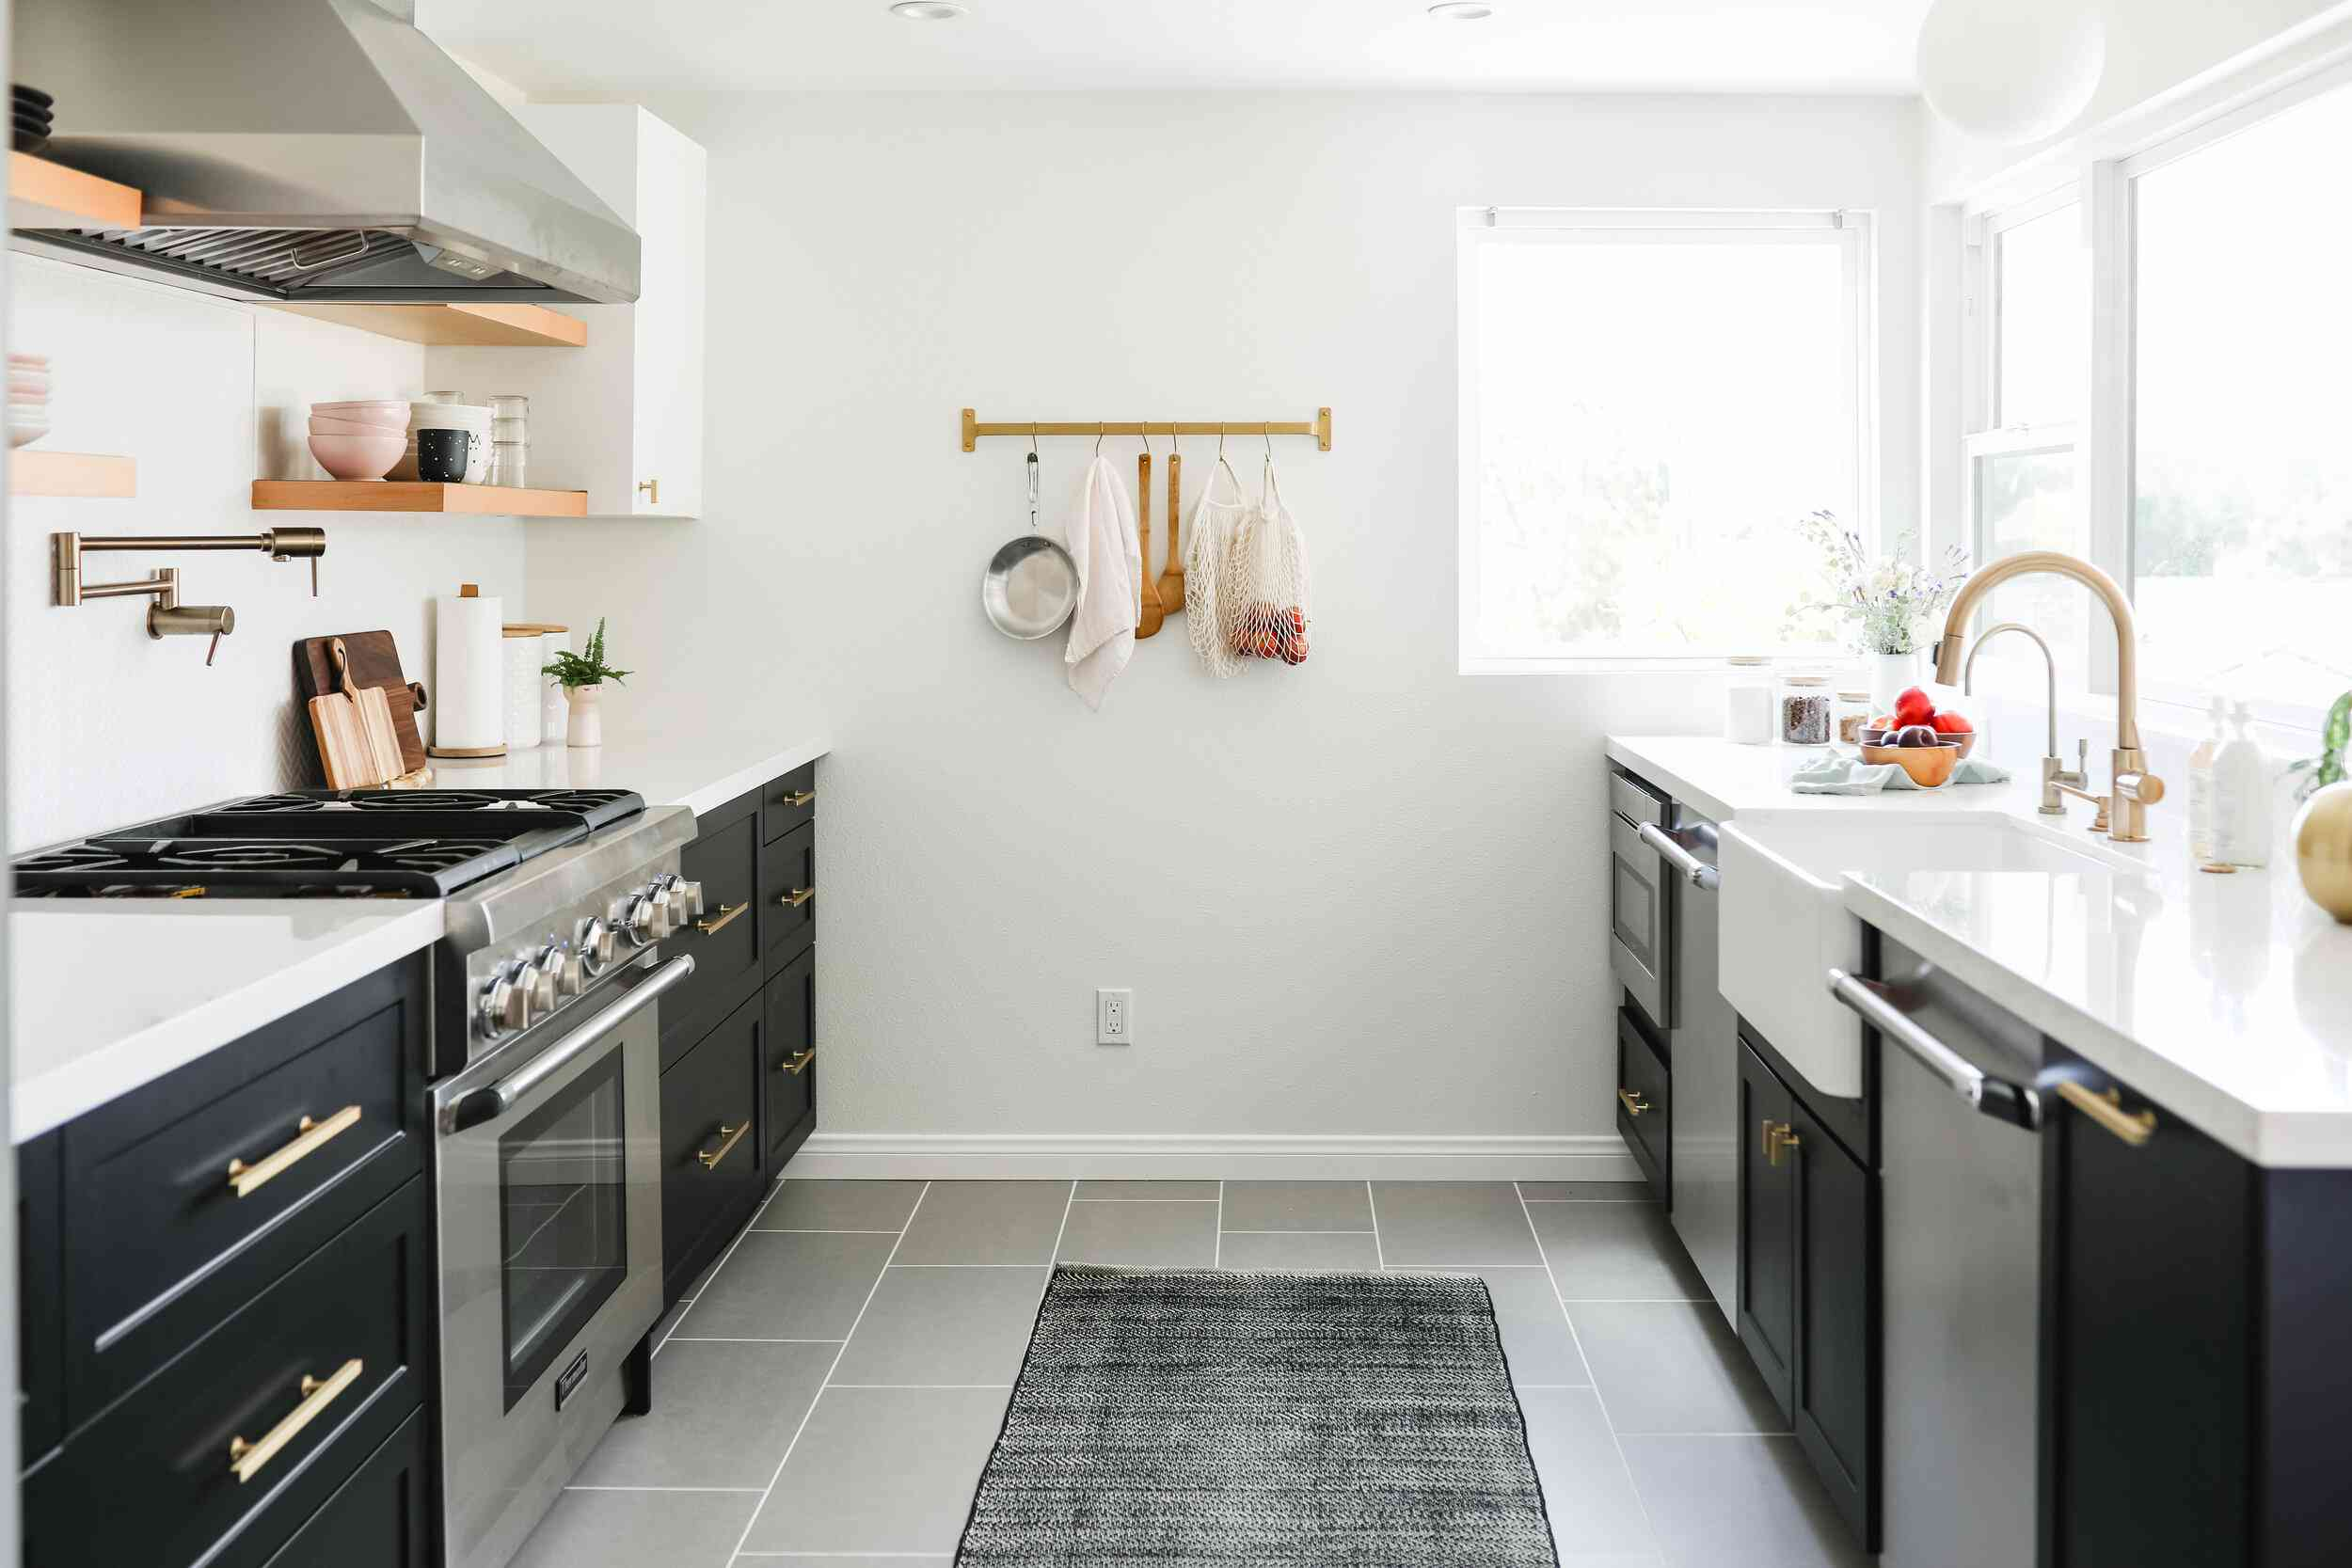 A cabinet-lined kitchen with an almost bare wall